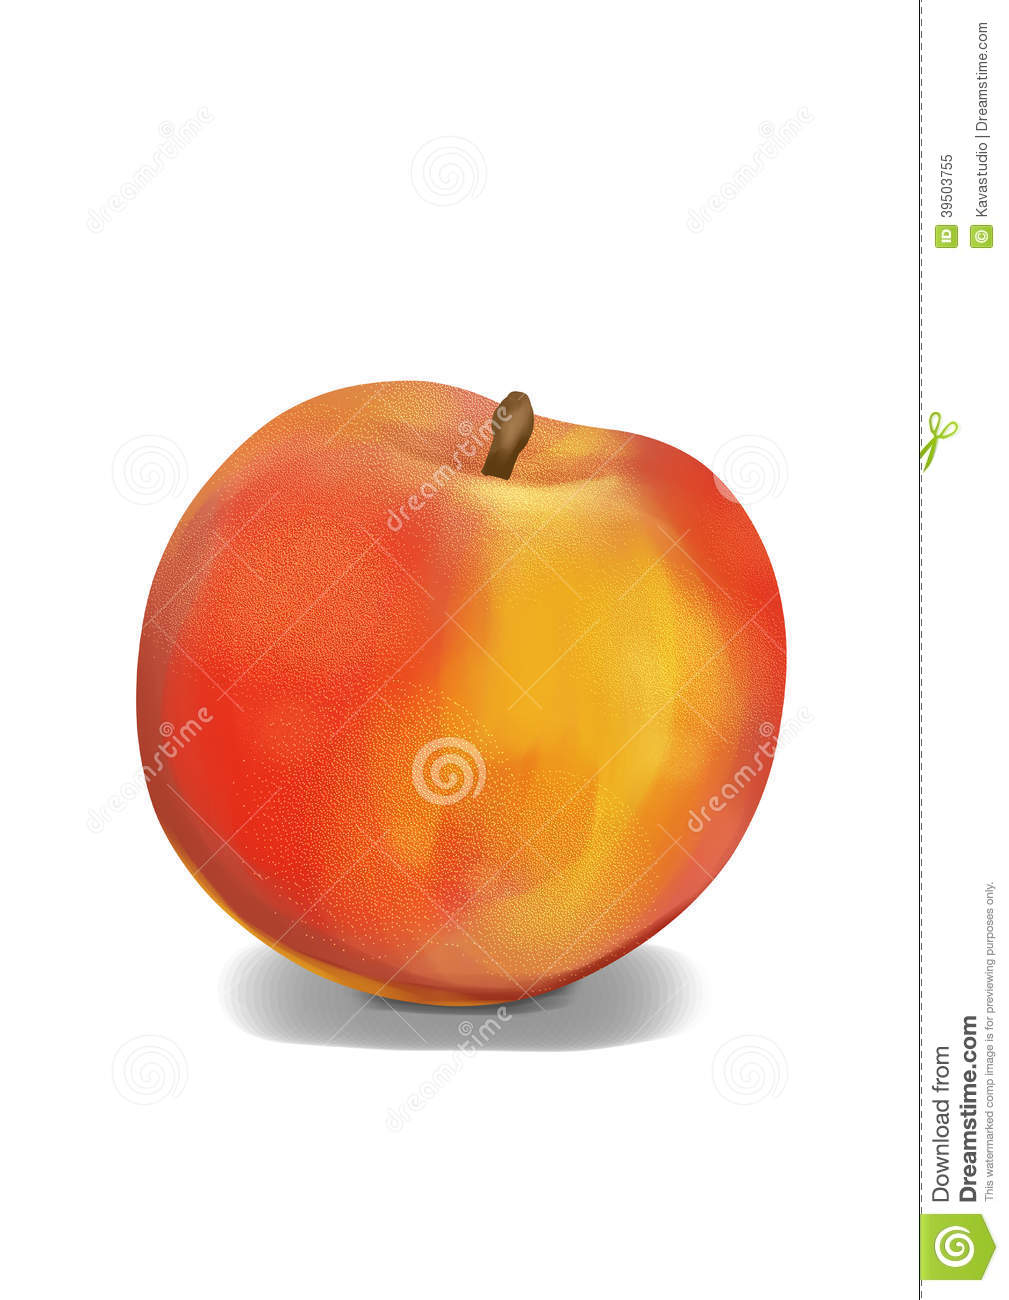 Realistic, plain peach illustration, front of one fruit